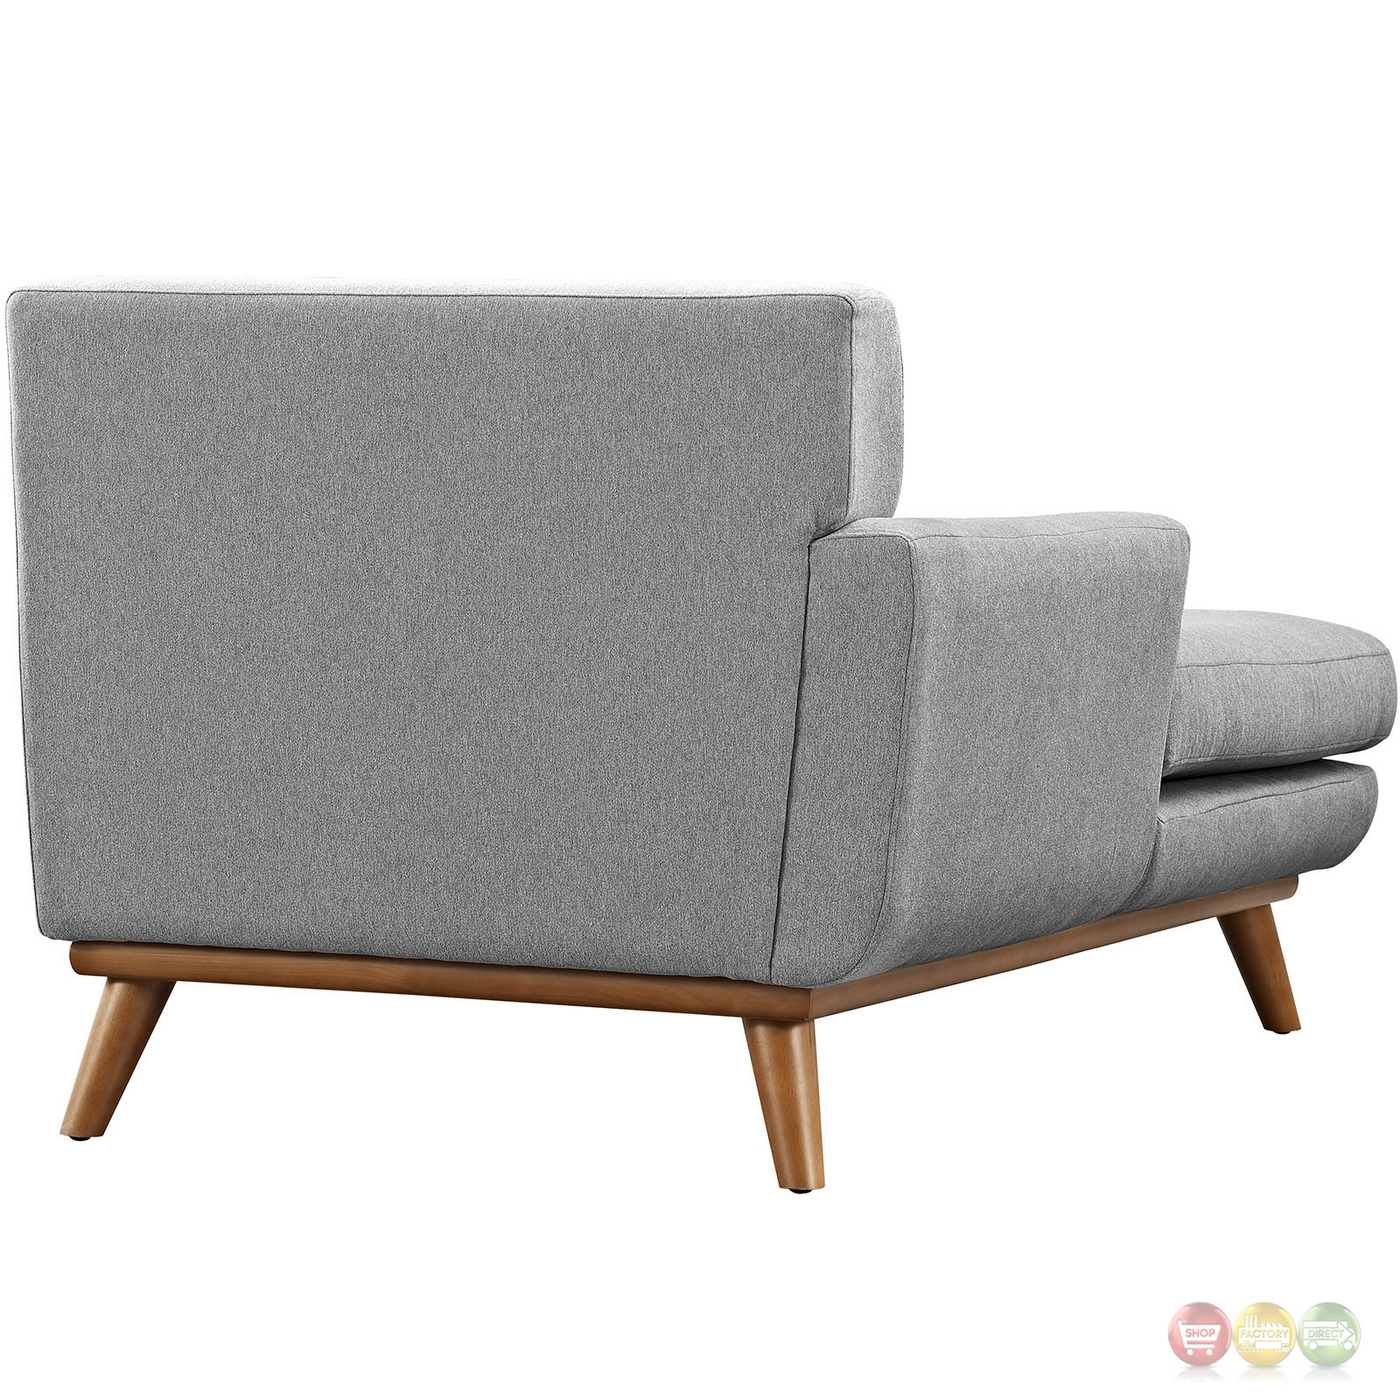 Mid century modern engage button tufted left arm chaise for Button tufted chaise